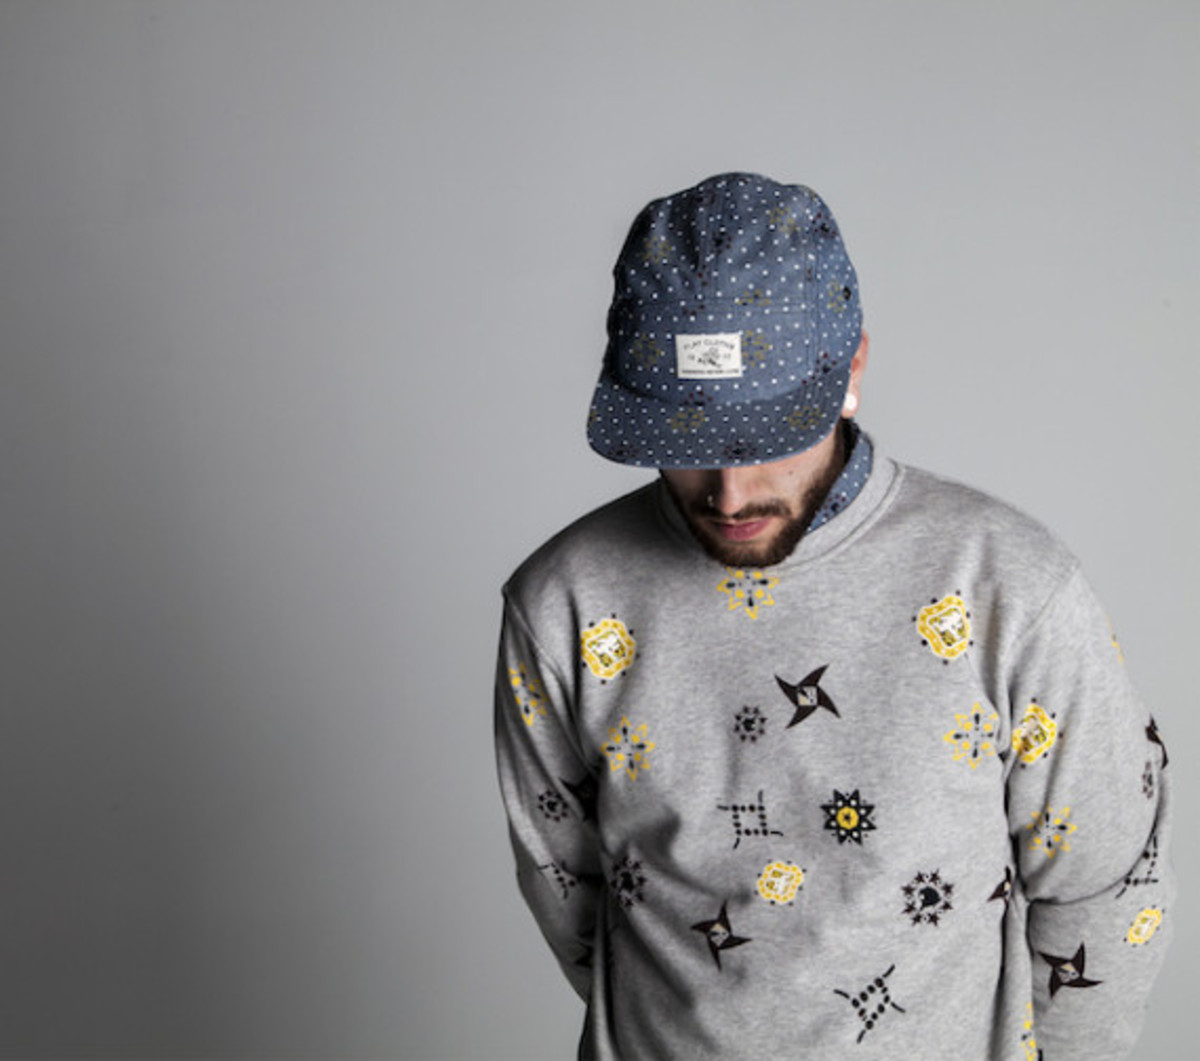 Play Cloths - Holiday 2013 Collection Lookbook - Delivery 1 - 4